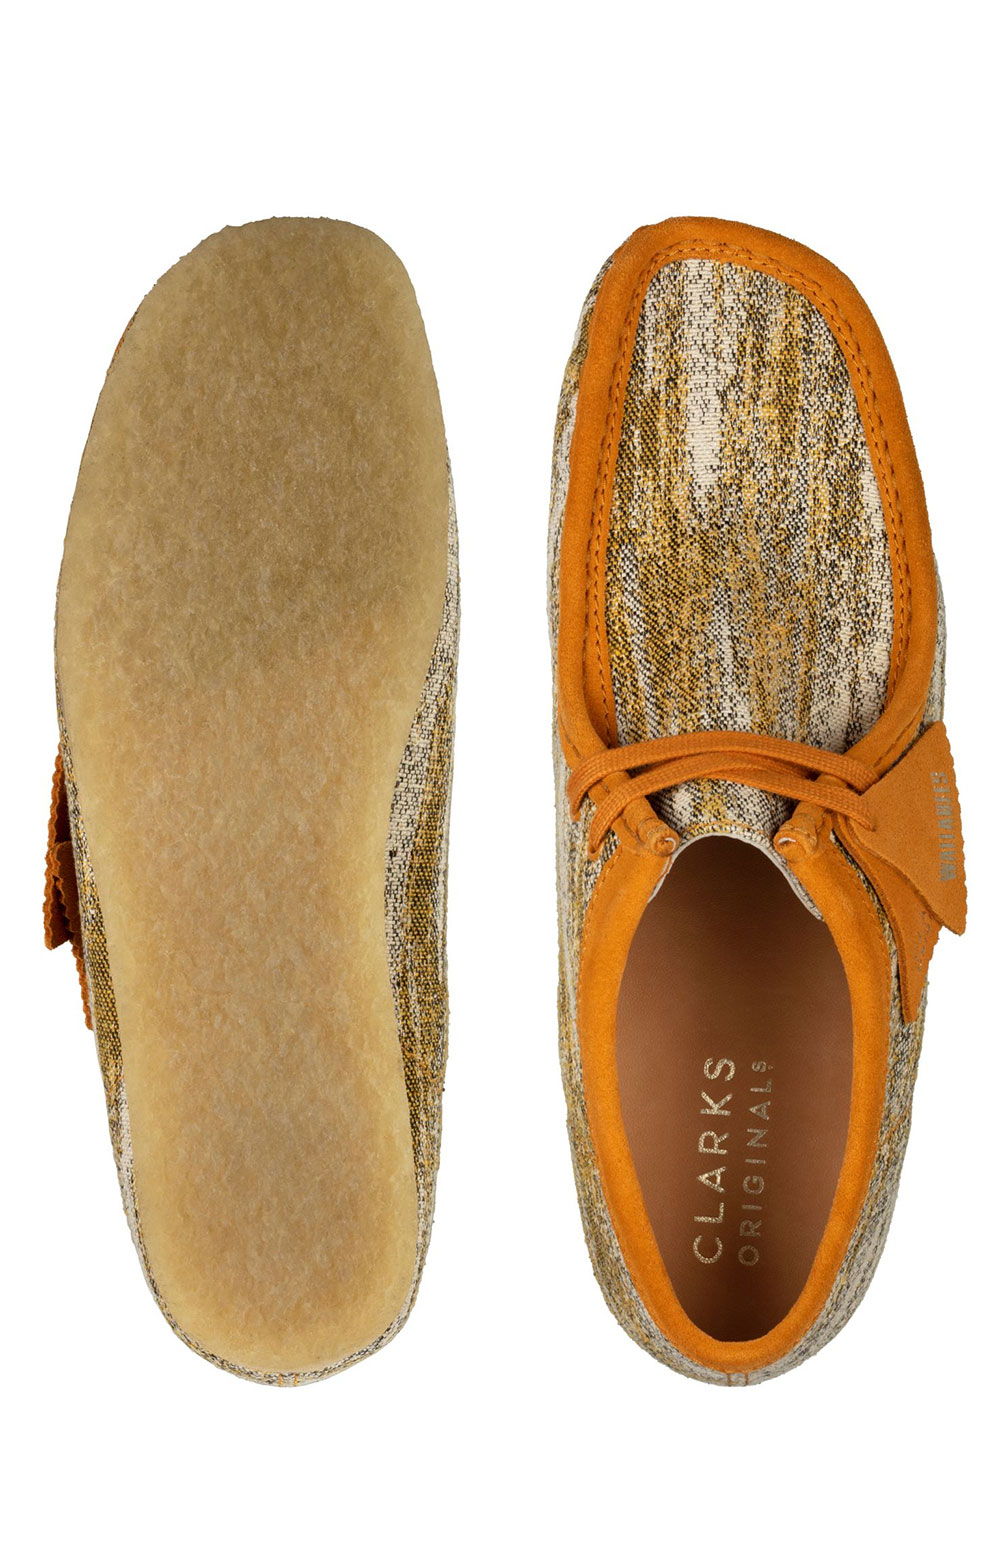 (26159548) Wallabee Shoes - Sand Fabric  6